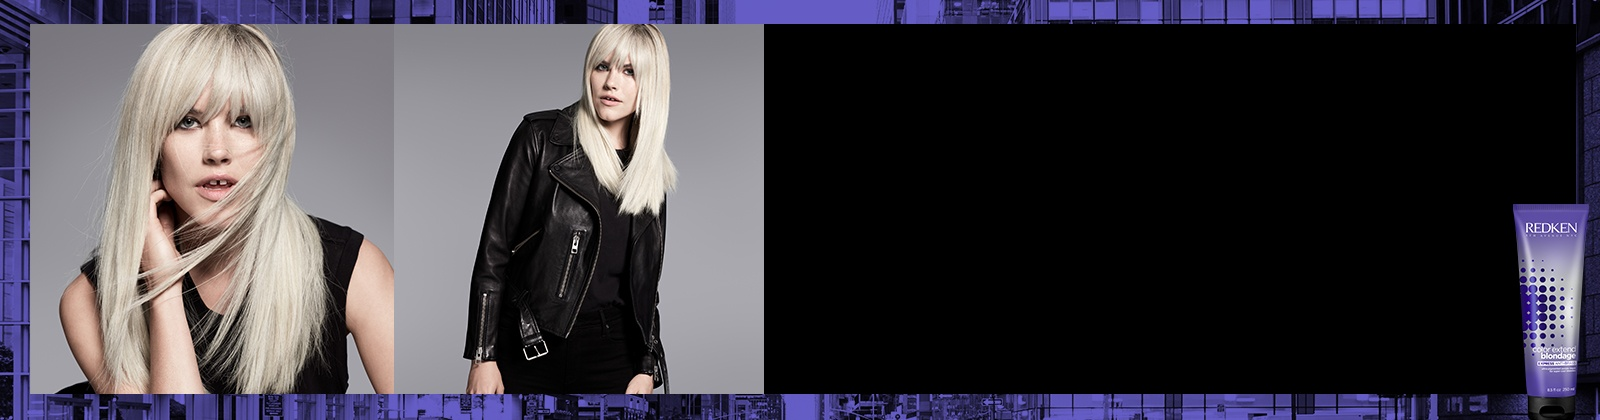 Redken 2019 Color Extend Blondage Mask Model Homepage Mobile.jpg